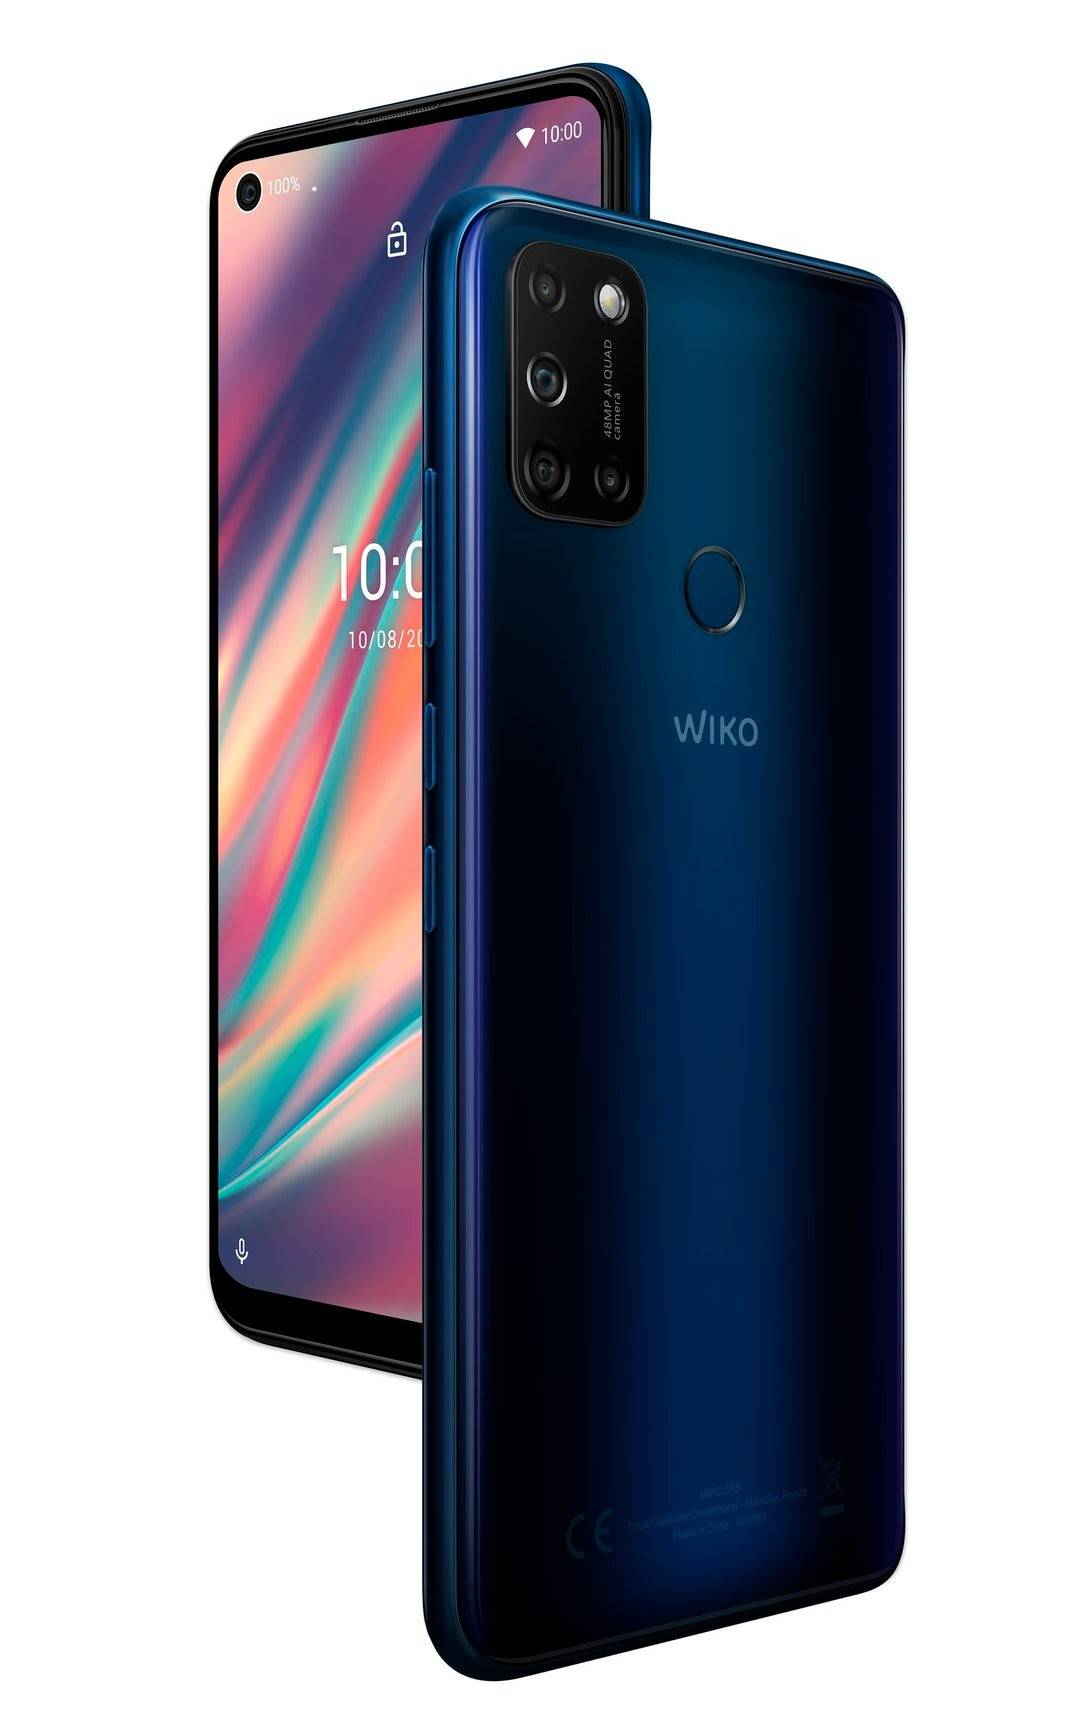 """Wiko Smartphone View 5 Plus (6.55"""") 4gb 128gb 4g Lte Android 10 Dual Sim - Blu [Wikviepluwv8blust]"""